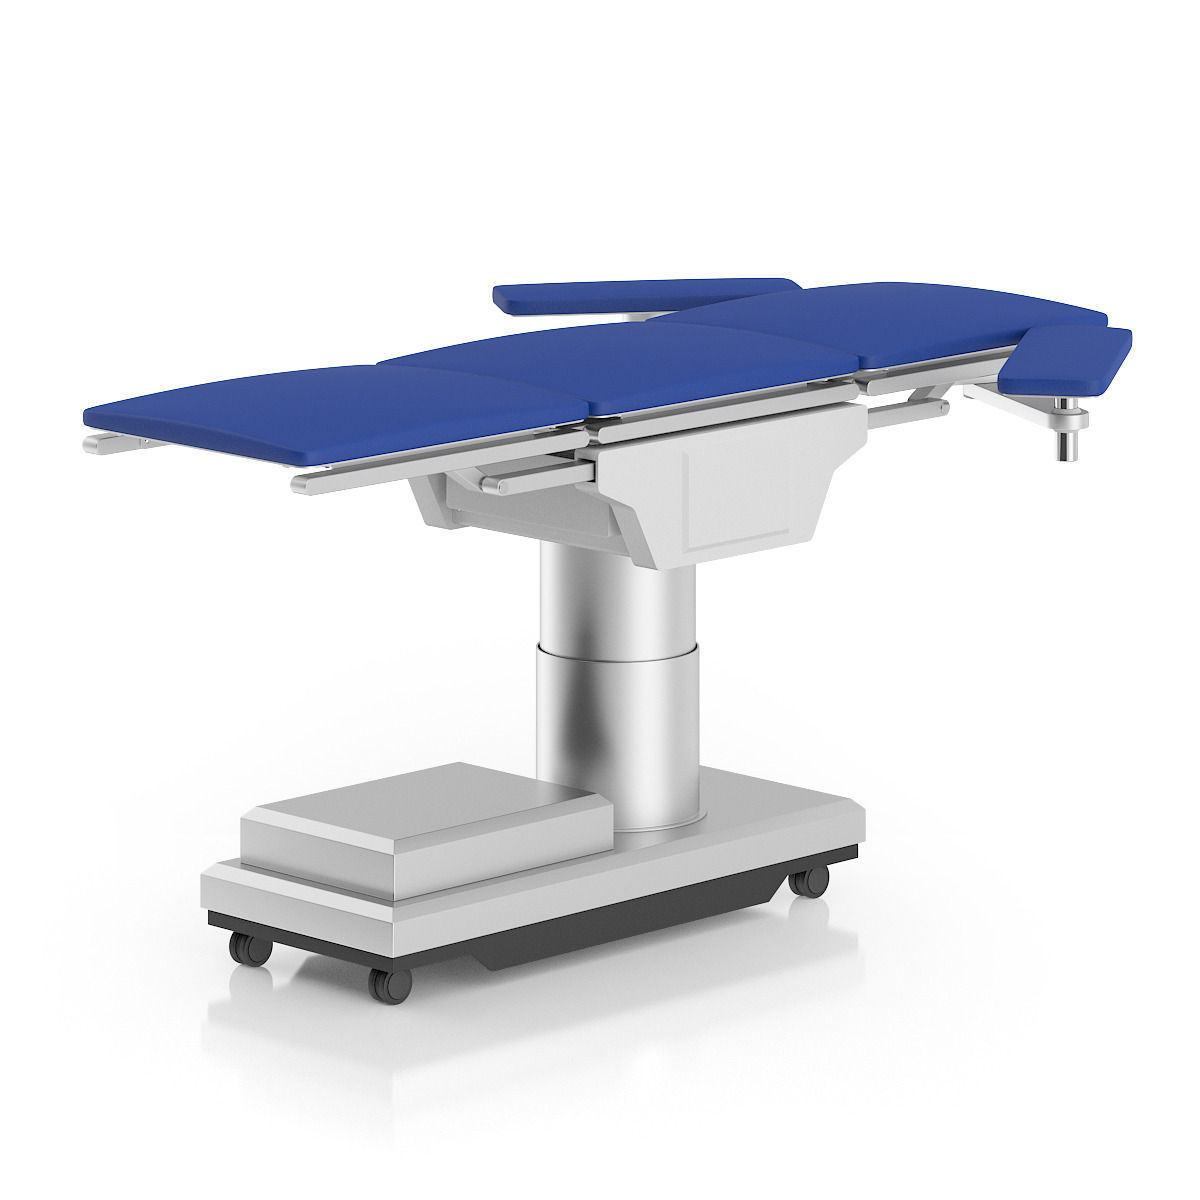 operating table 3d model operating table blue metal medical hospital